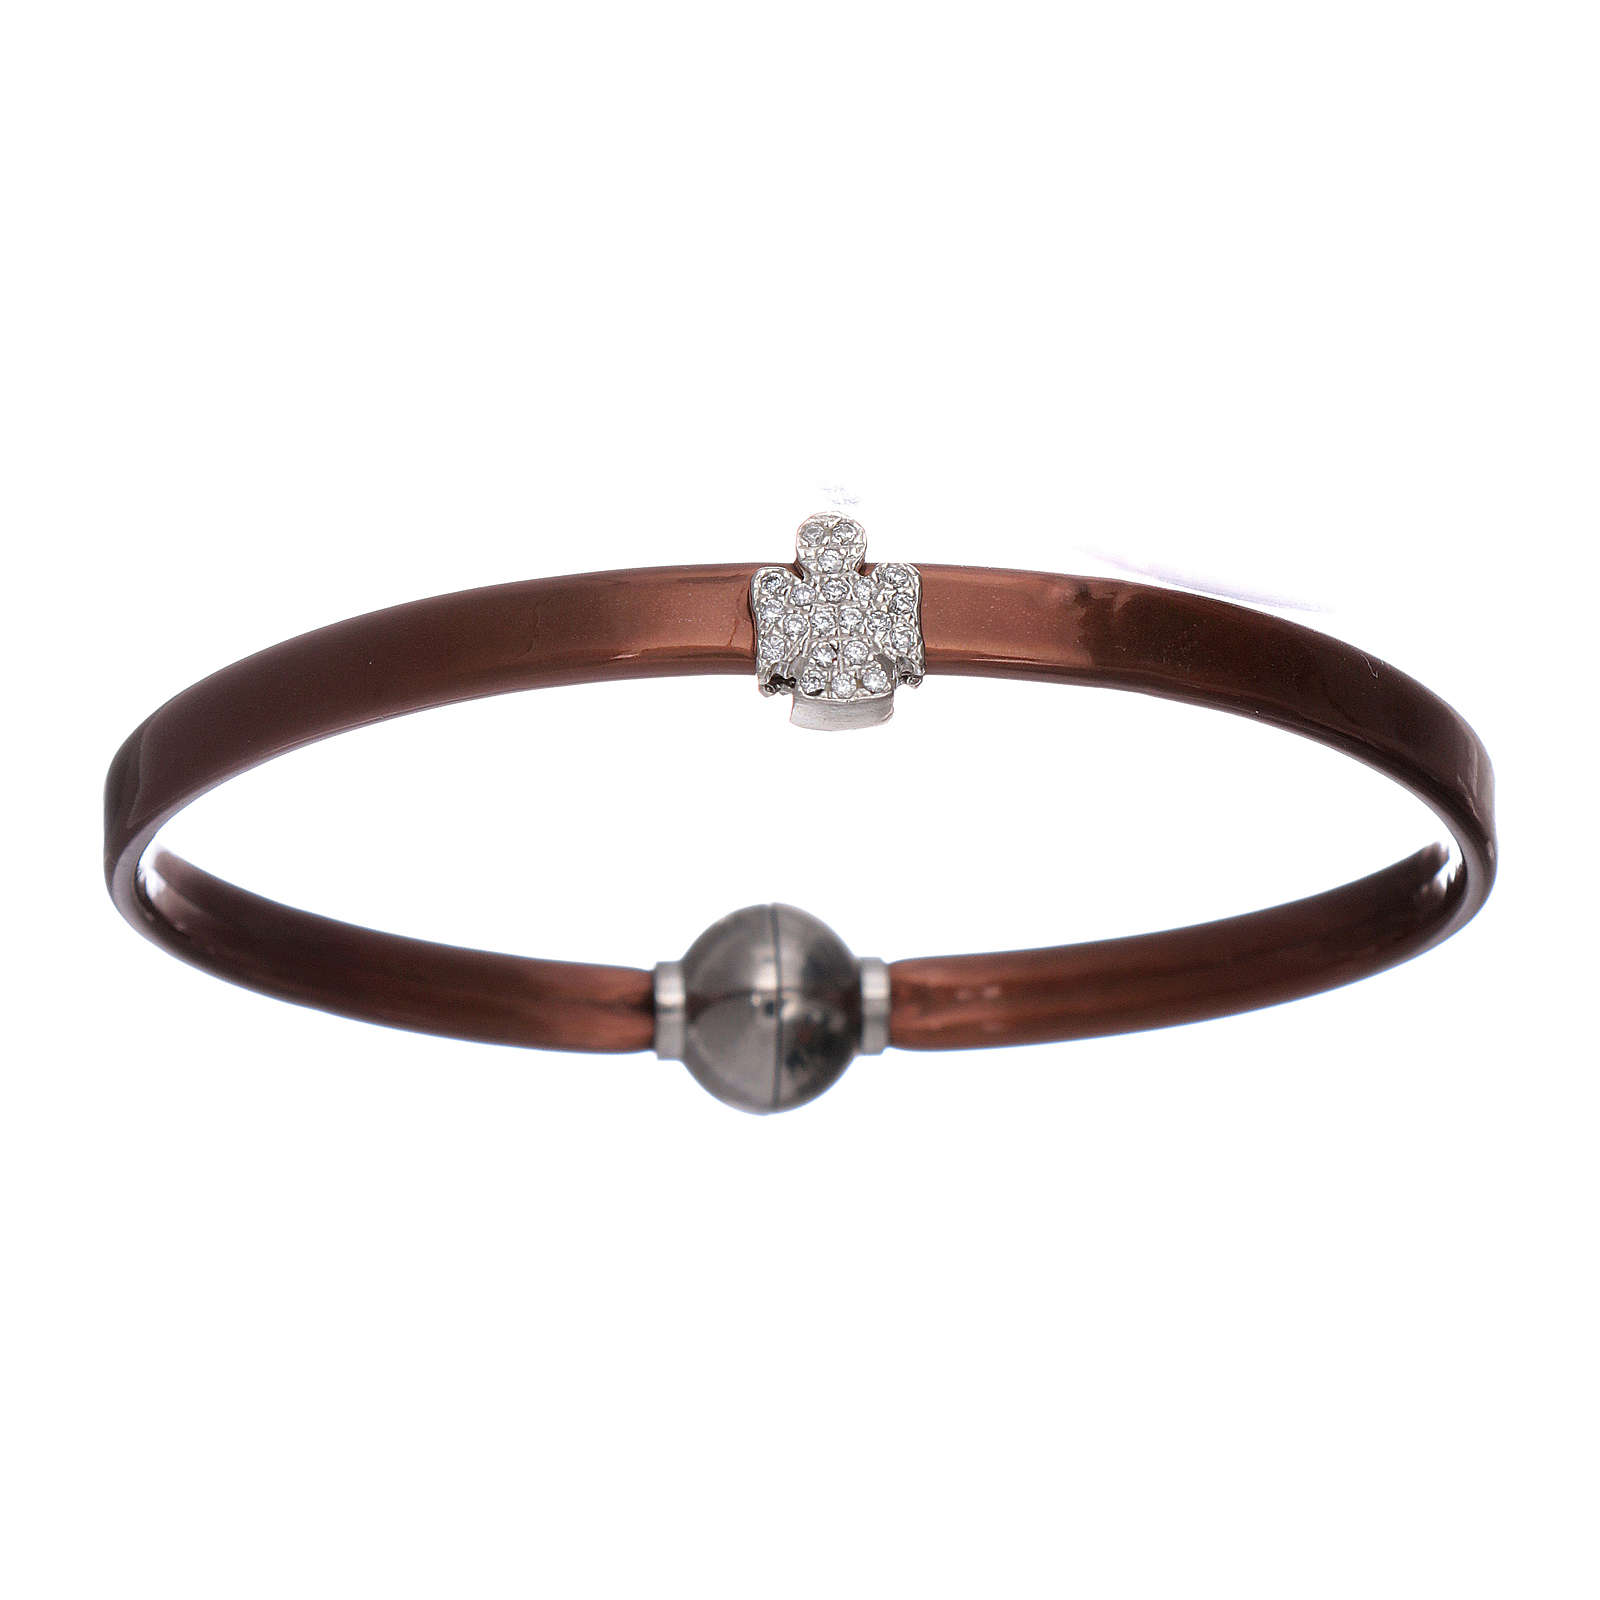 AMEN brown thermoplastic 925 sterling silver bracelet with a zirconate angel insert 4